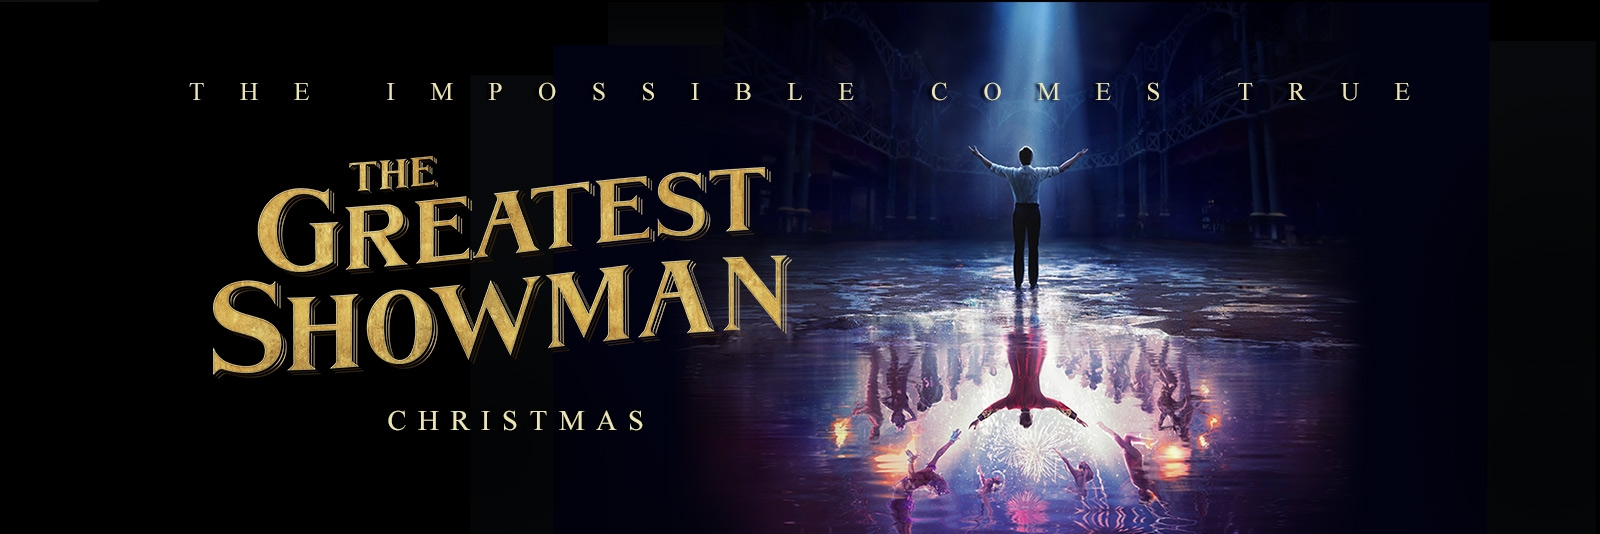 Greatest showman songs